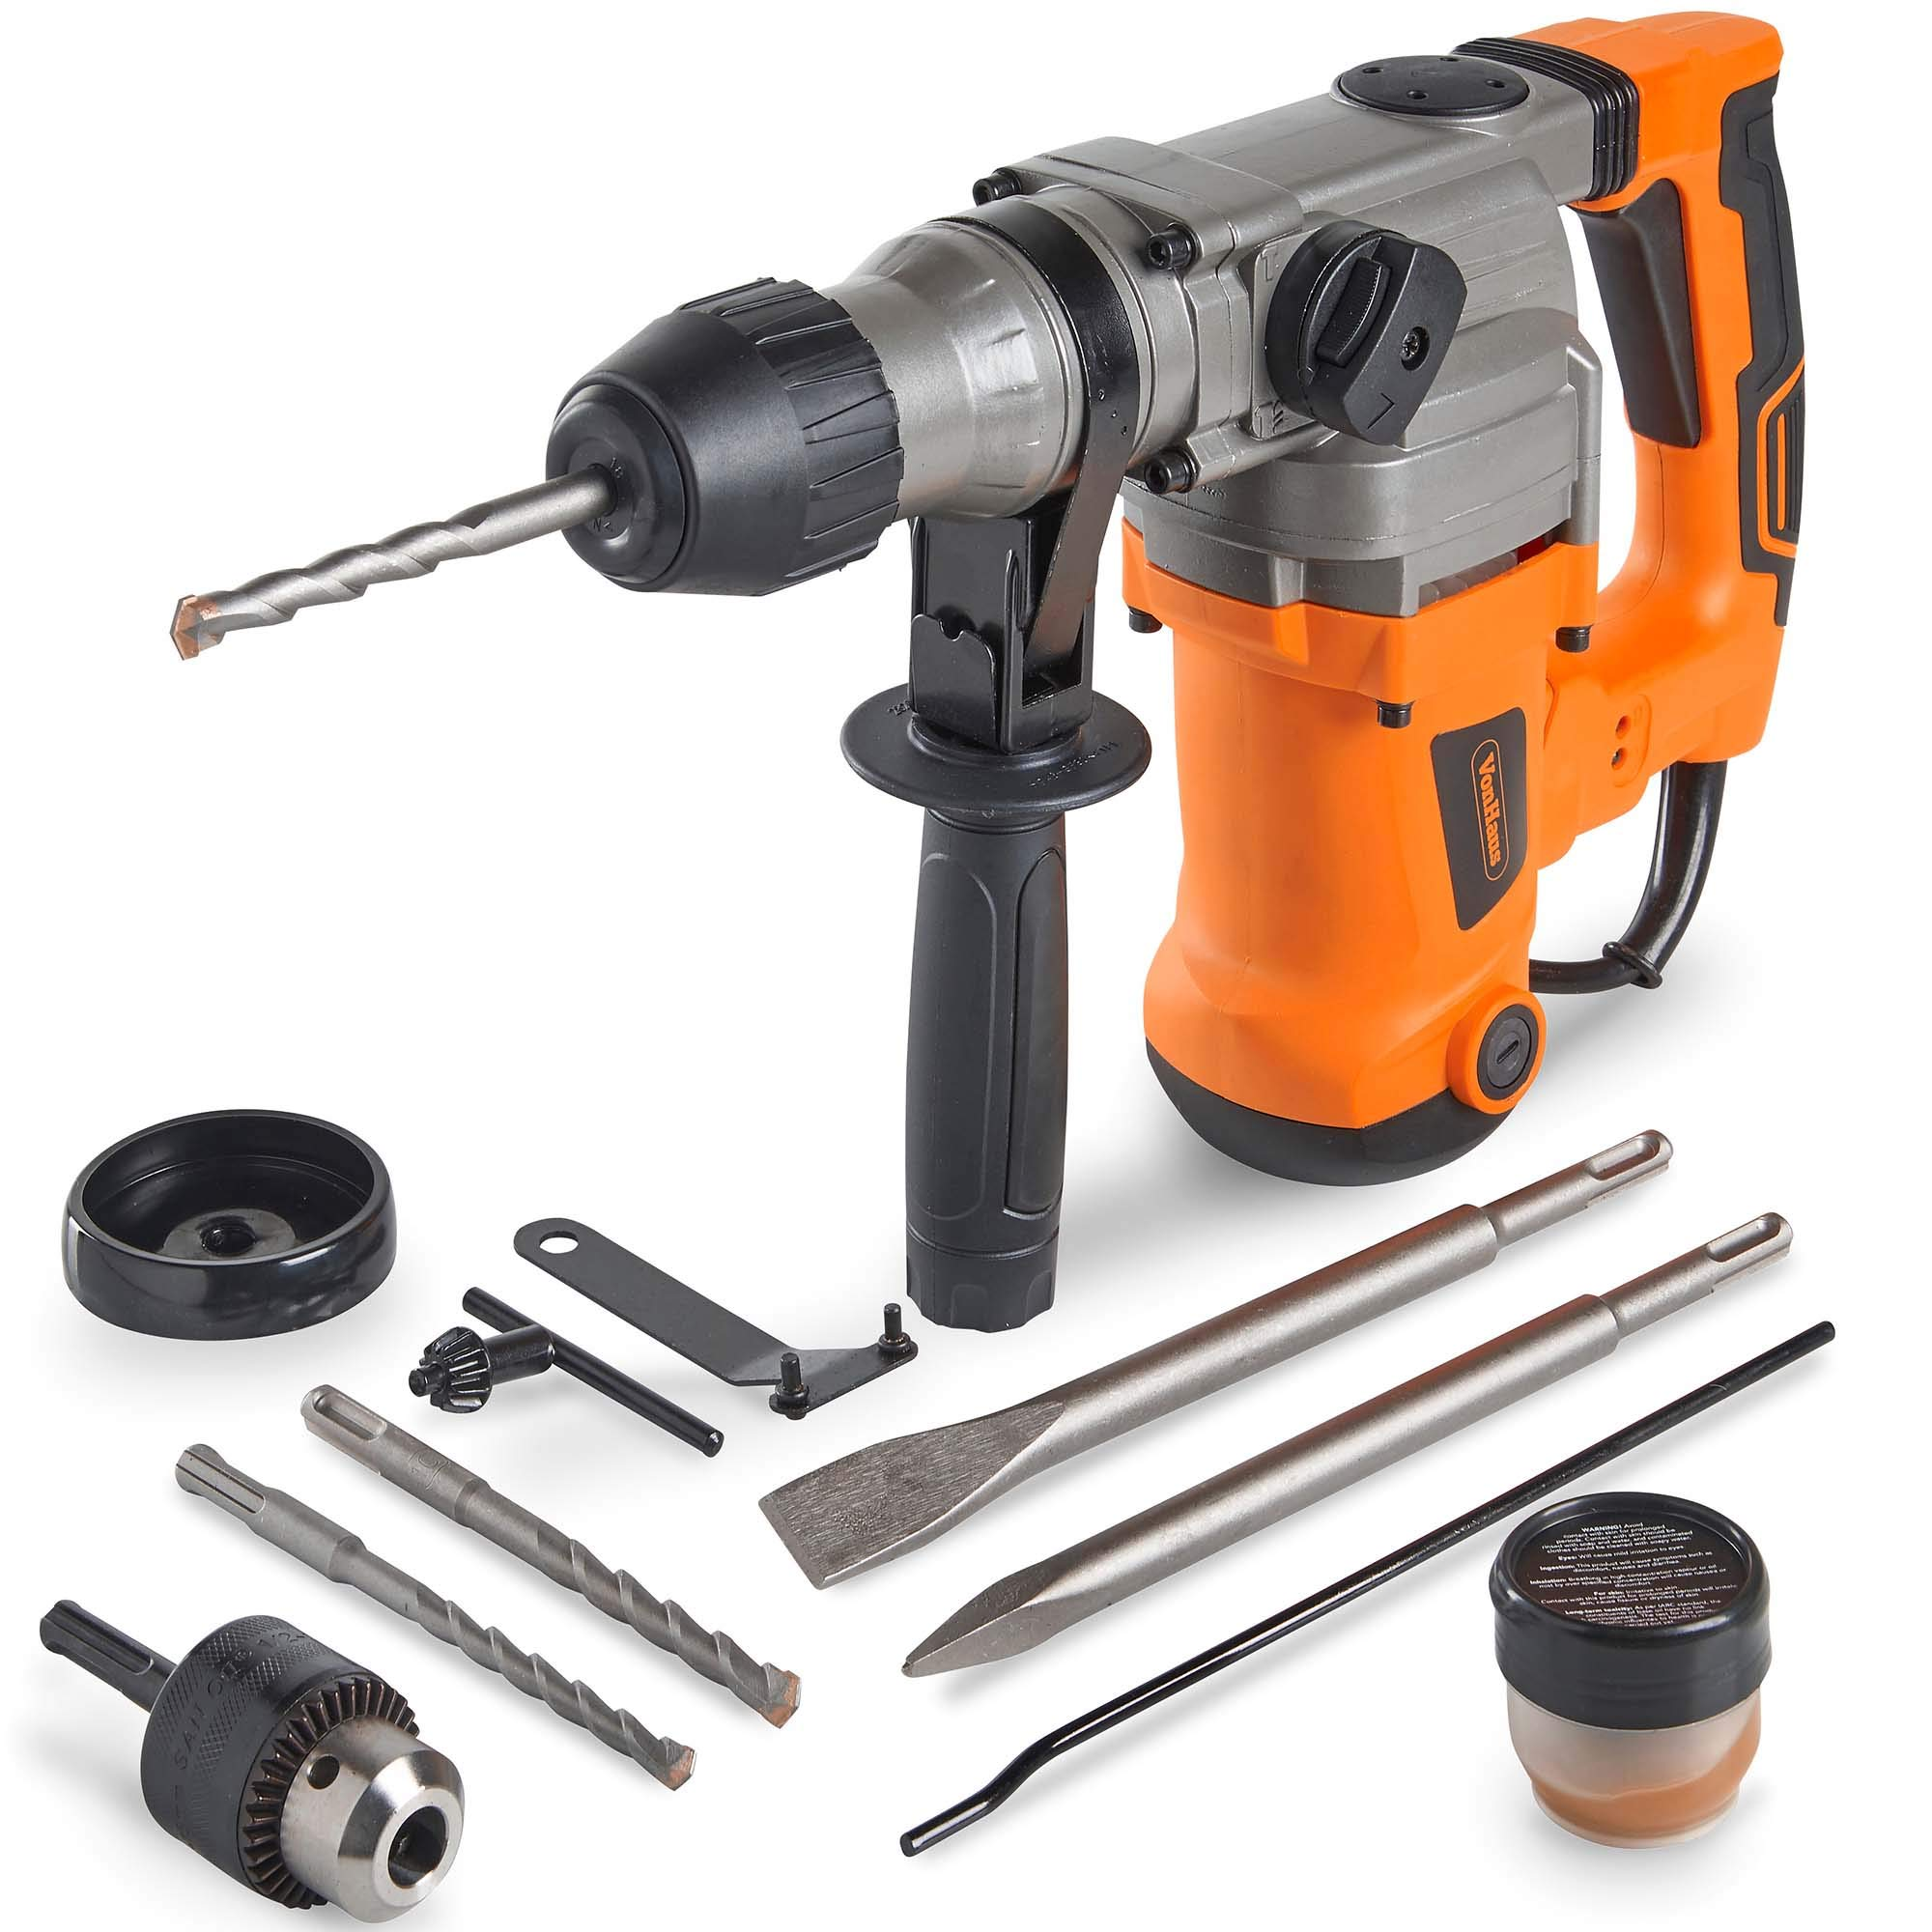 VonHaus 10 Amp Electric Rotary Hammer Drill with Vibration Control, 3 Drill Functions, Variable Speed and Adjustable Handle - Includes SDS Drill Bits Demolition Kit, Flat and Point Chisels with Case